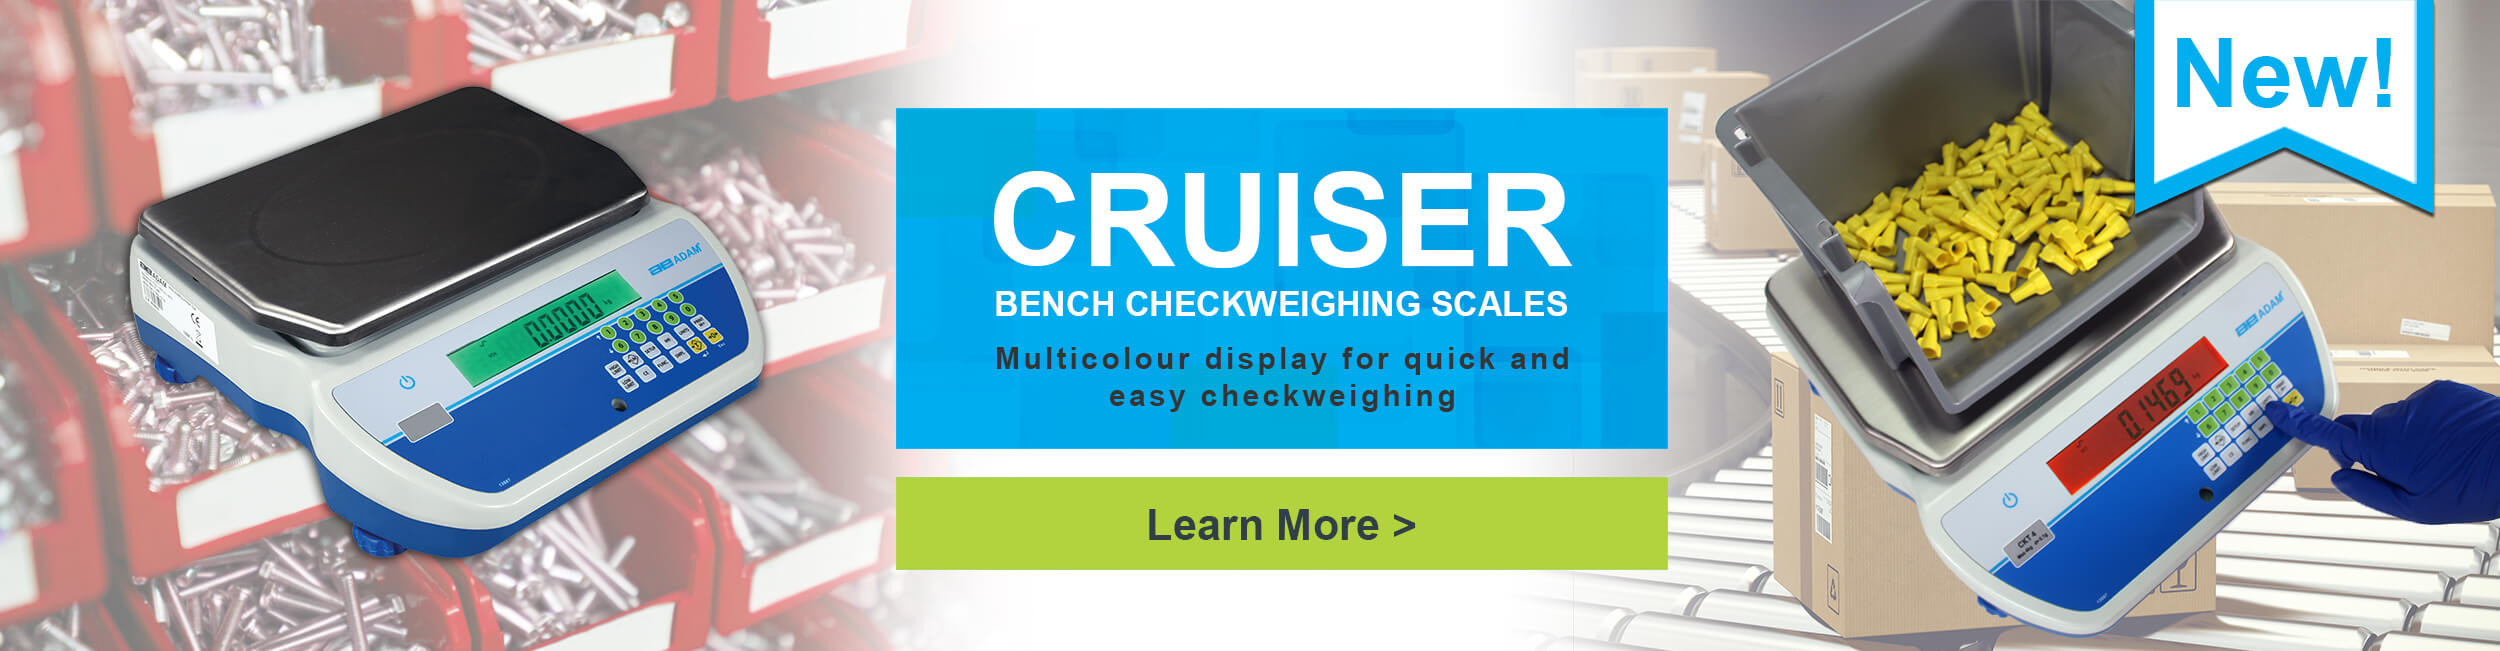 Adam Cruiser Bench Checkweighing Scales - multicolour display for quick and easy checkweighing